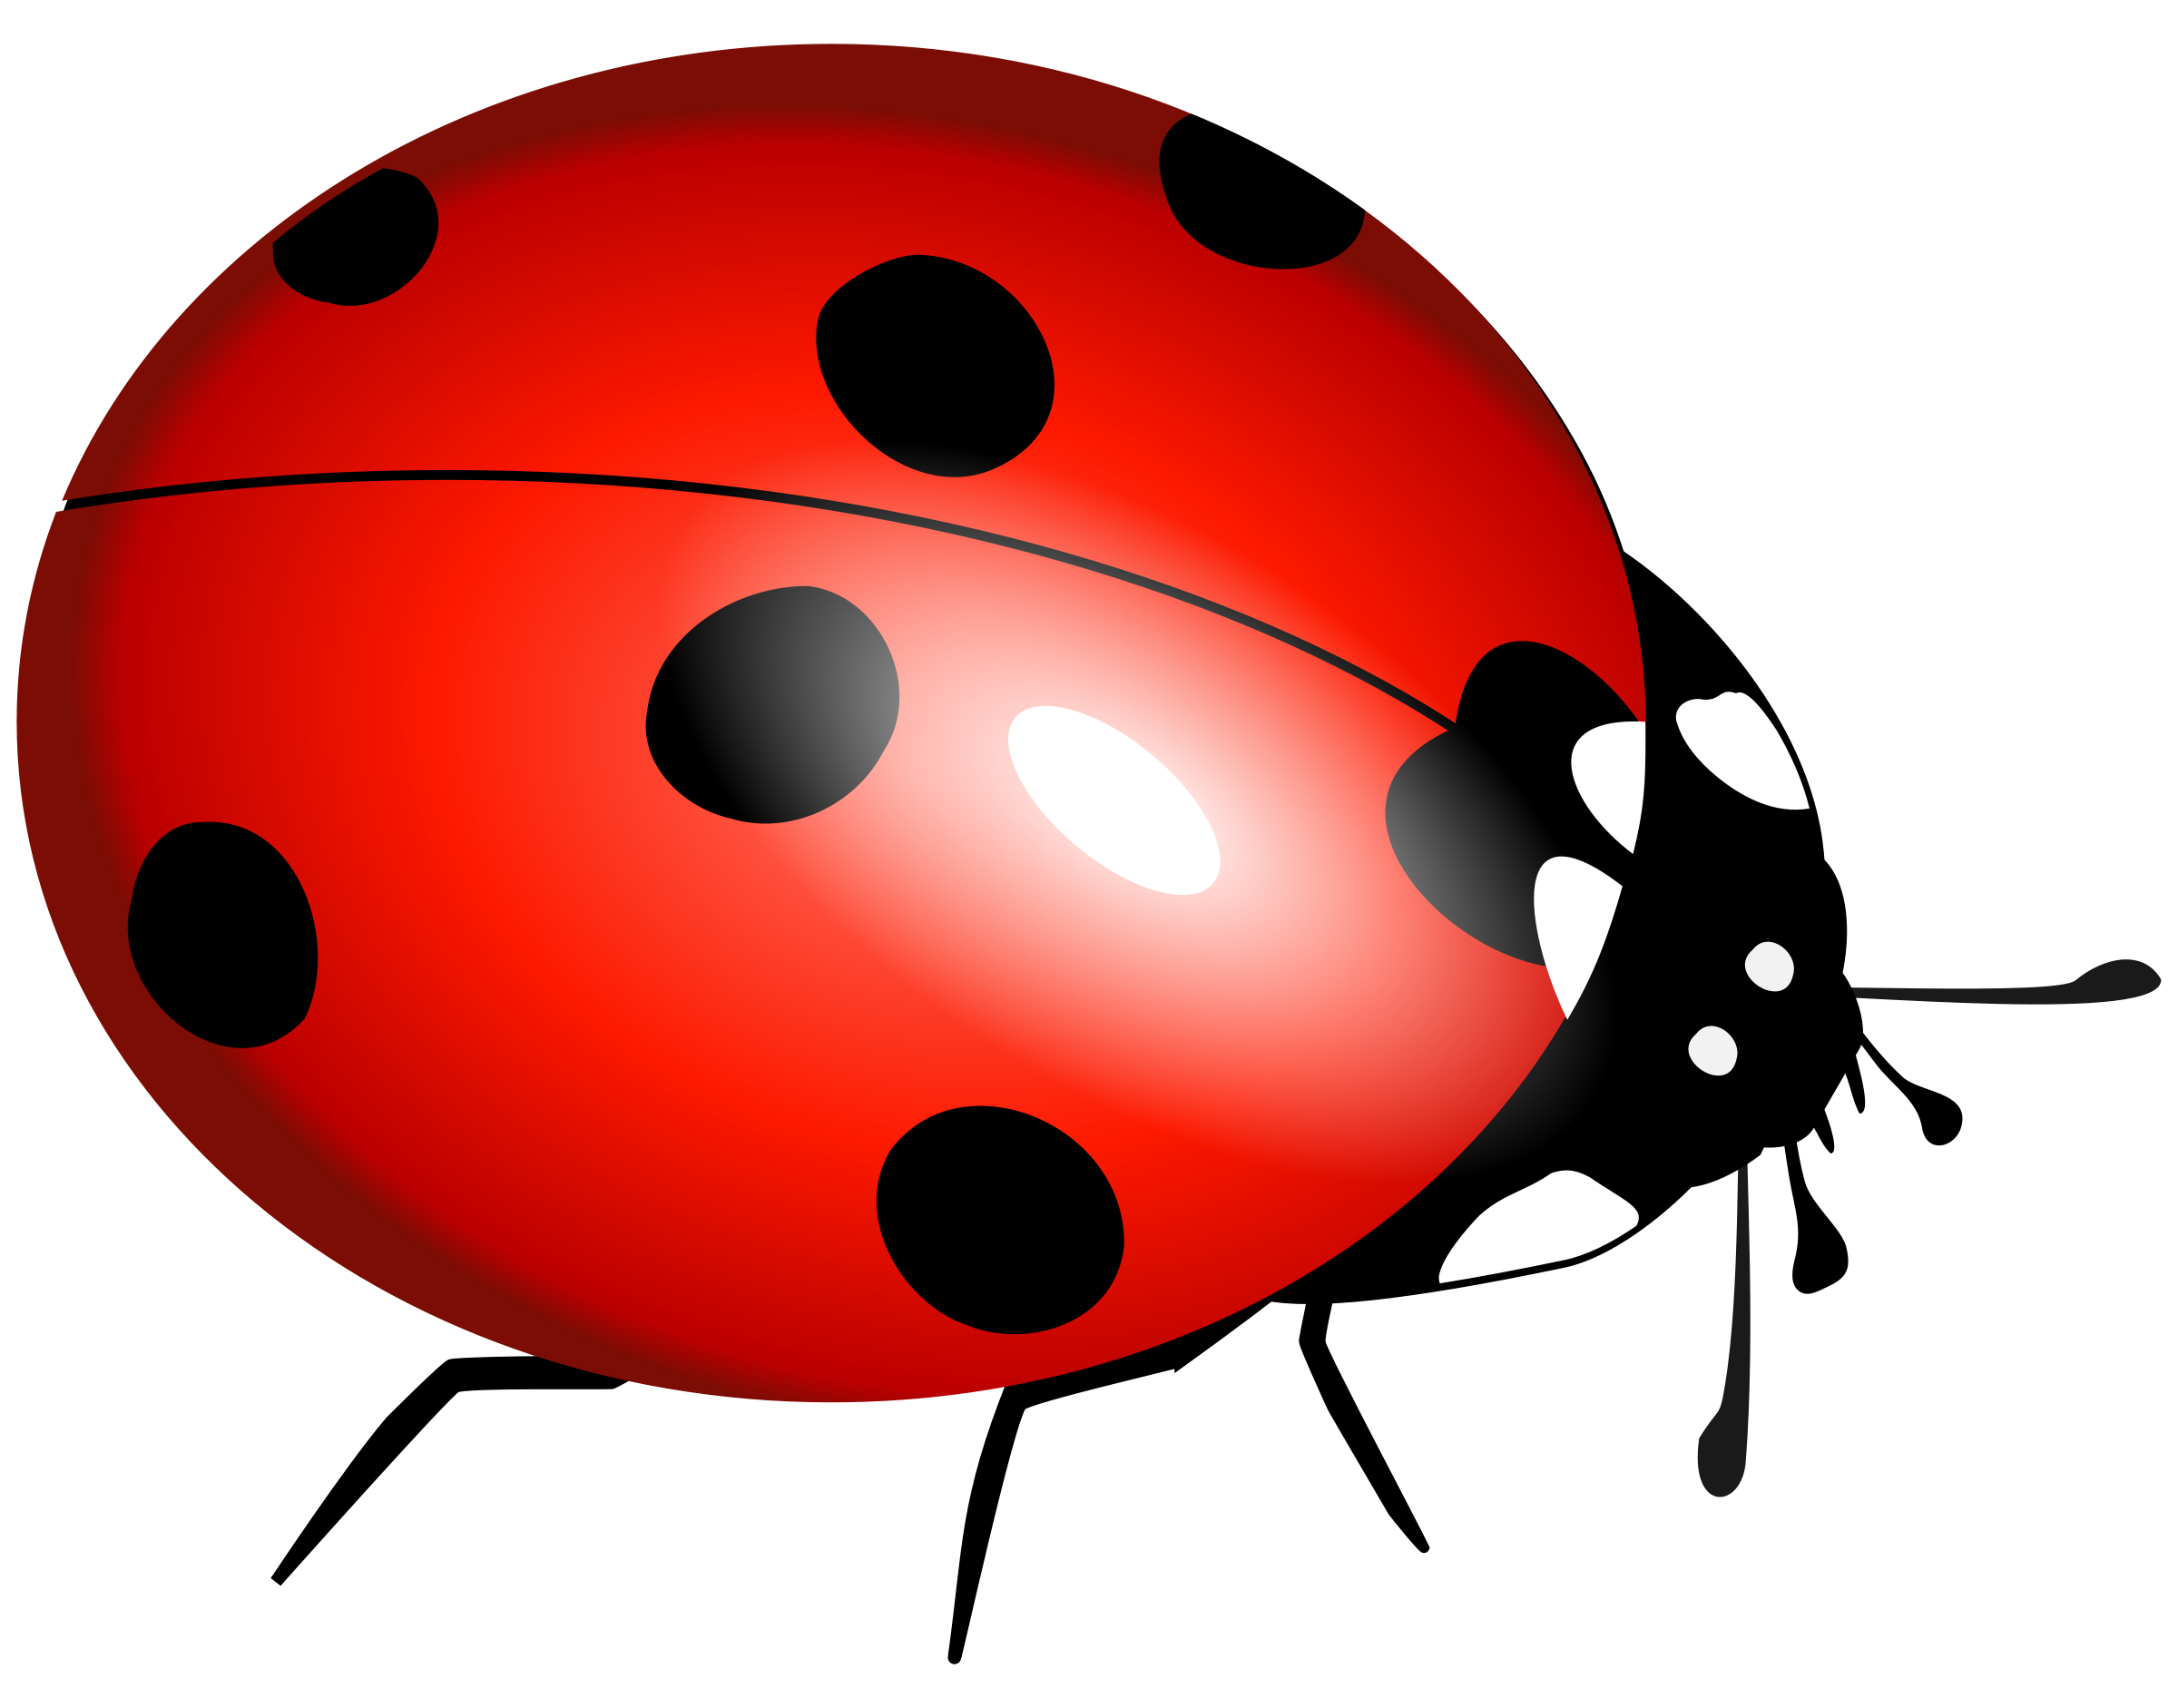 ladybug clipart, ladybug flying clipart clipart panda clipart #32073